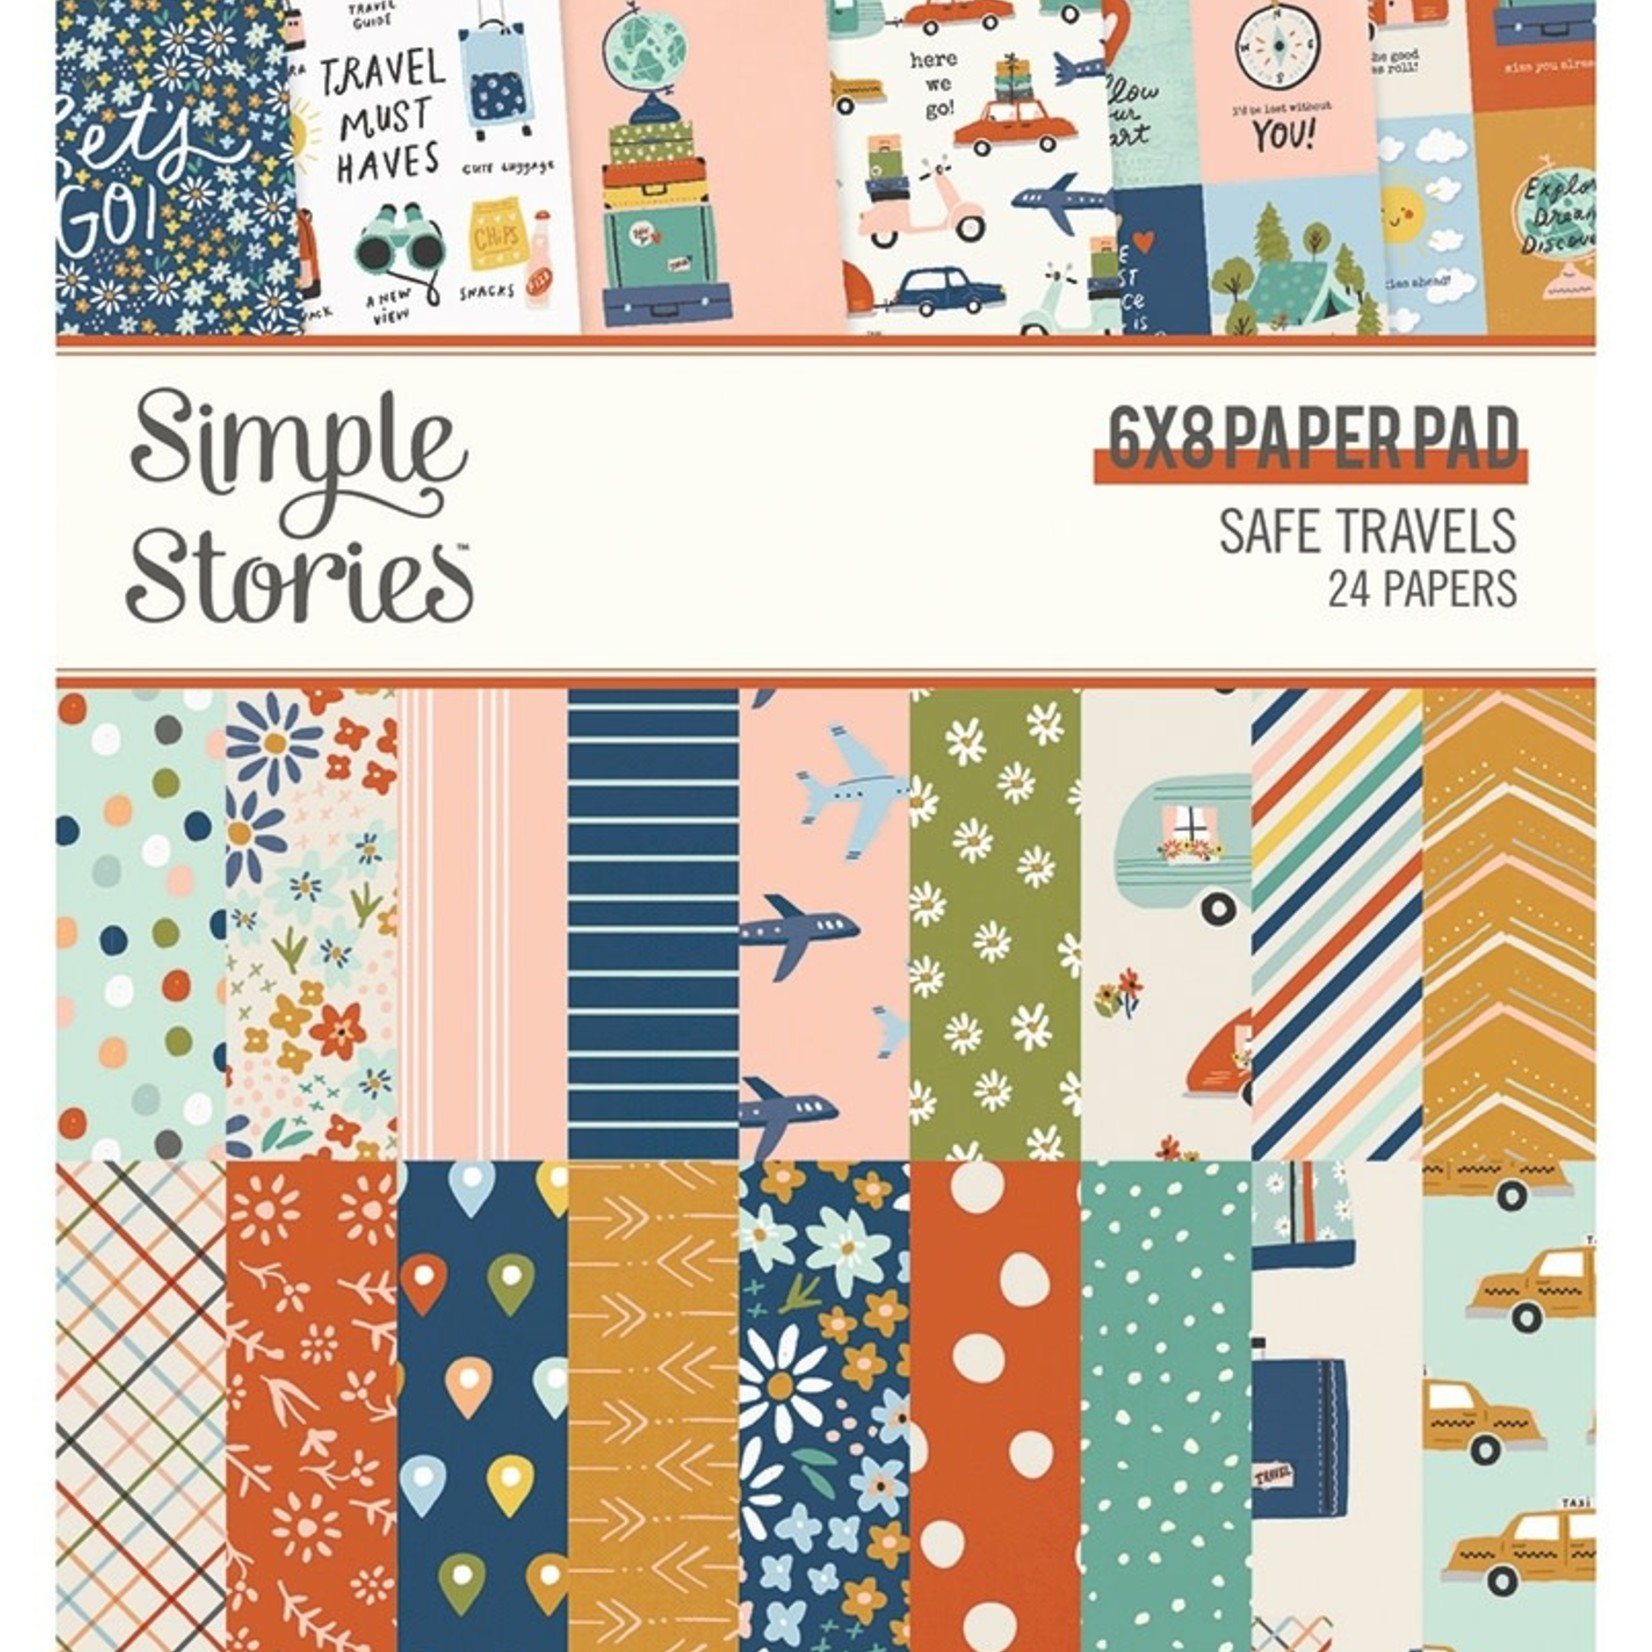 """Simple Stories Simple Stories - 6"""" x 8"""" Paper Pad - Safe Travels"""